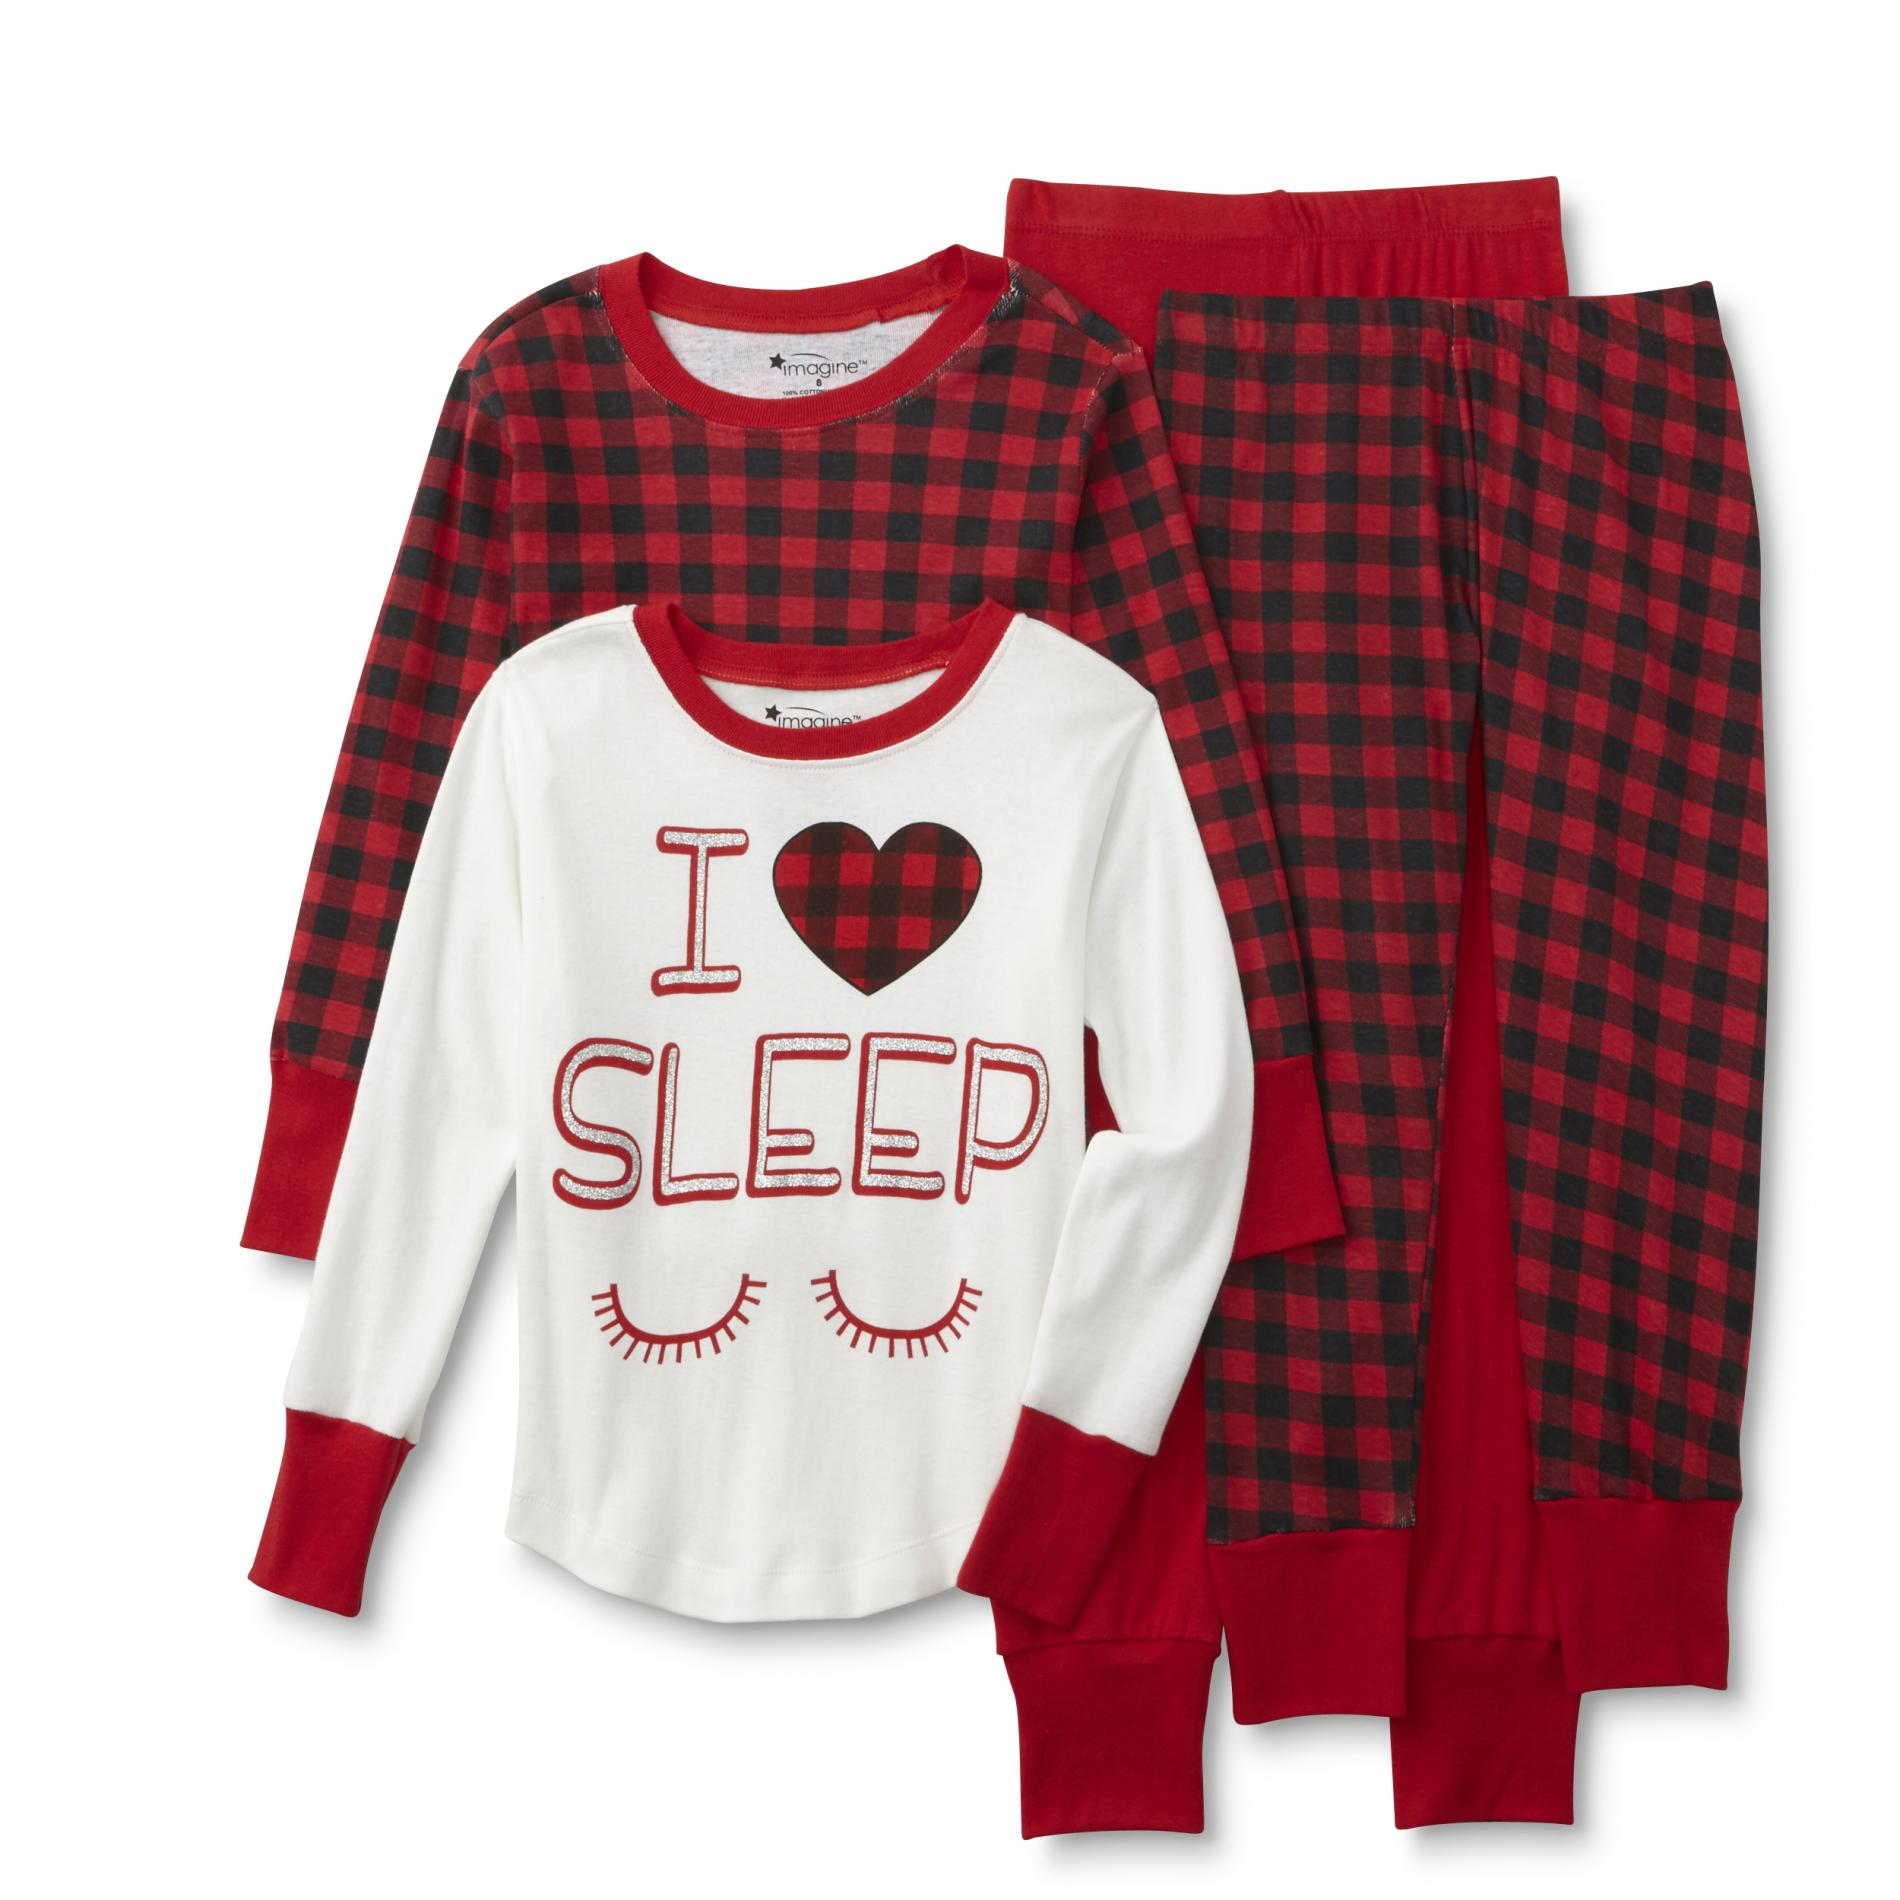 Shop for SLEEP & LOUNGE at neo-craft.gq Eligible for free shipping and free returns. From The Community. CYZ Women's % Cotton Woven Sleep Pajama Pants. from $ 4 99 Prime. 4 out of 5 stars Turquaz Linen. Just Love. Short Sleeve Nightgown Sleep Dress Women $ 12 99 Prime. out of 5 stars